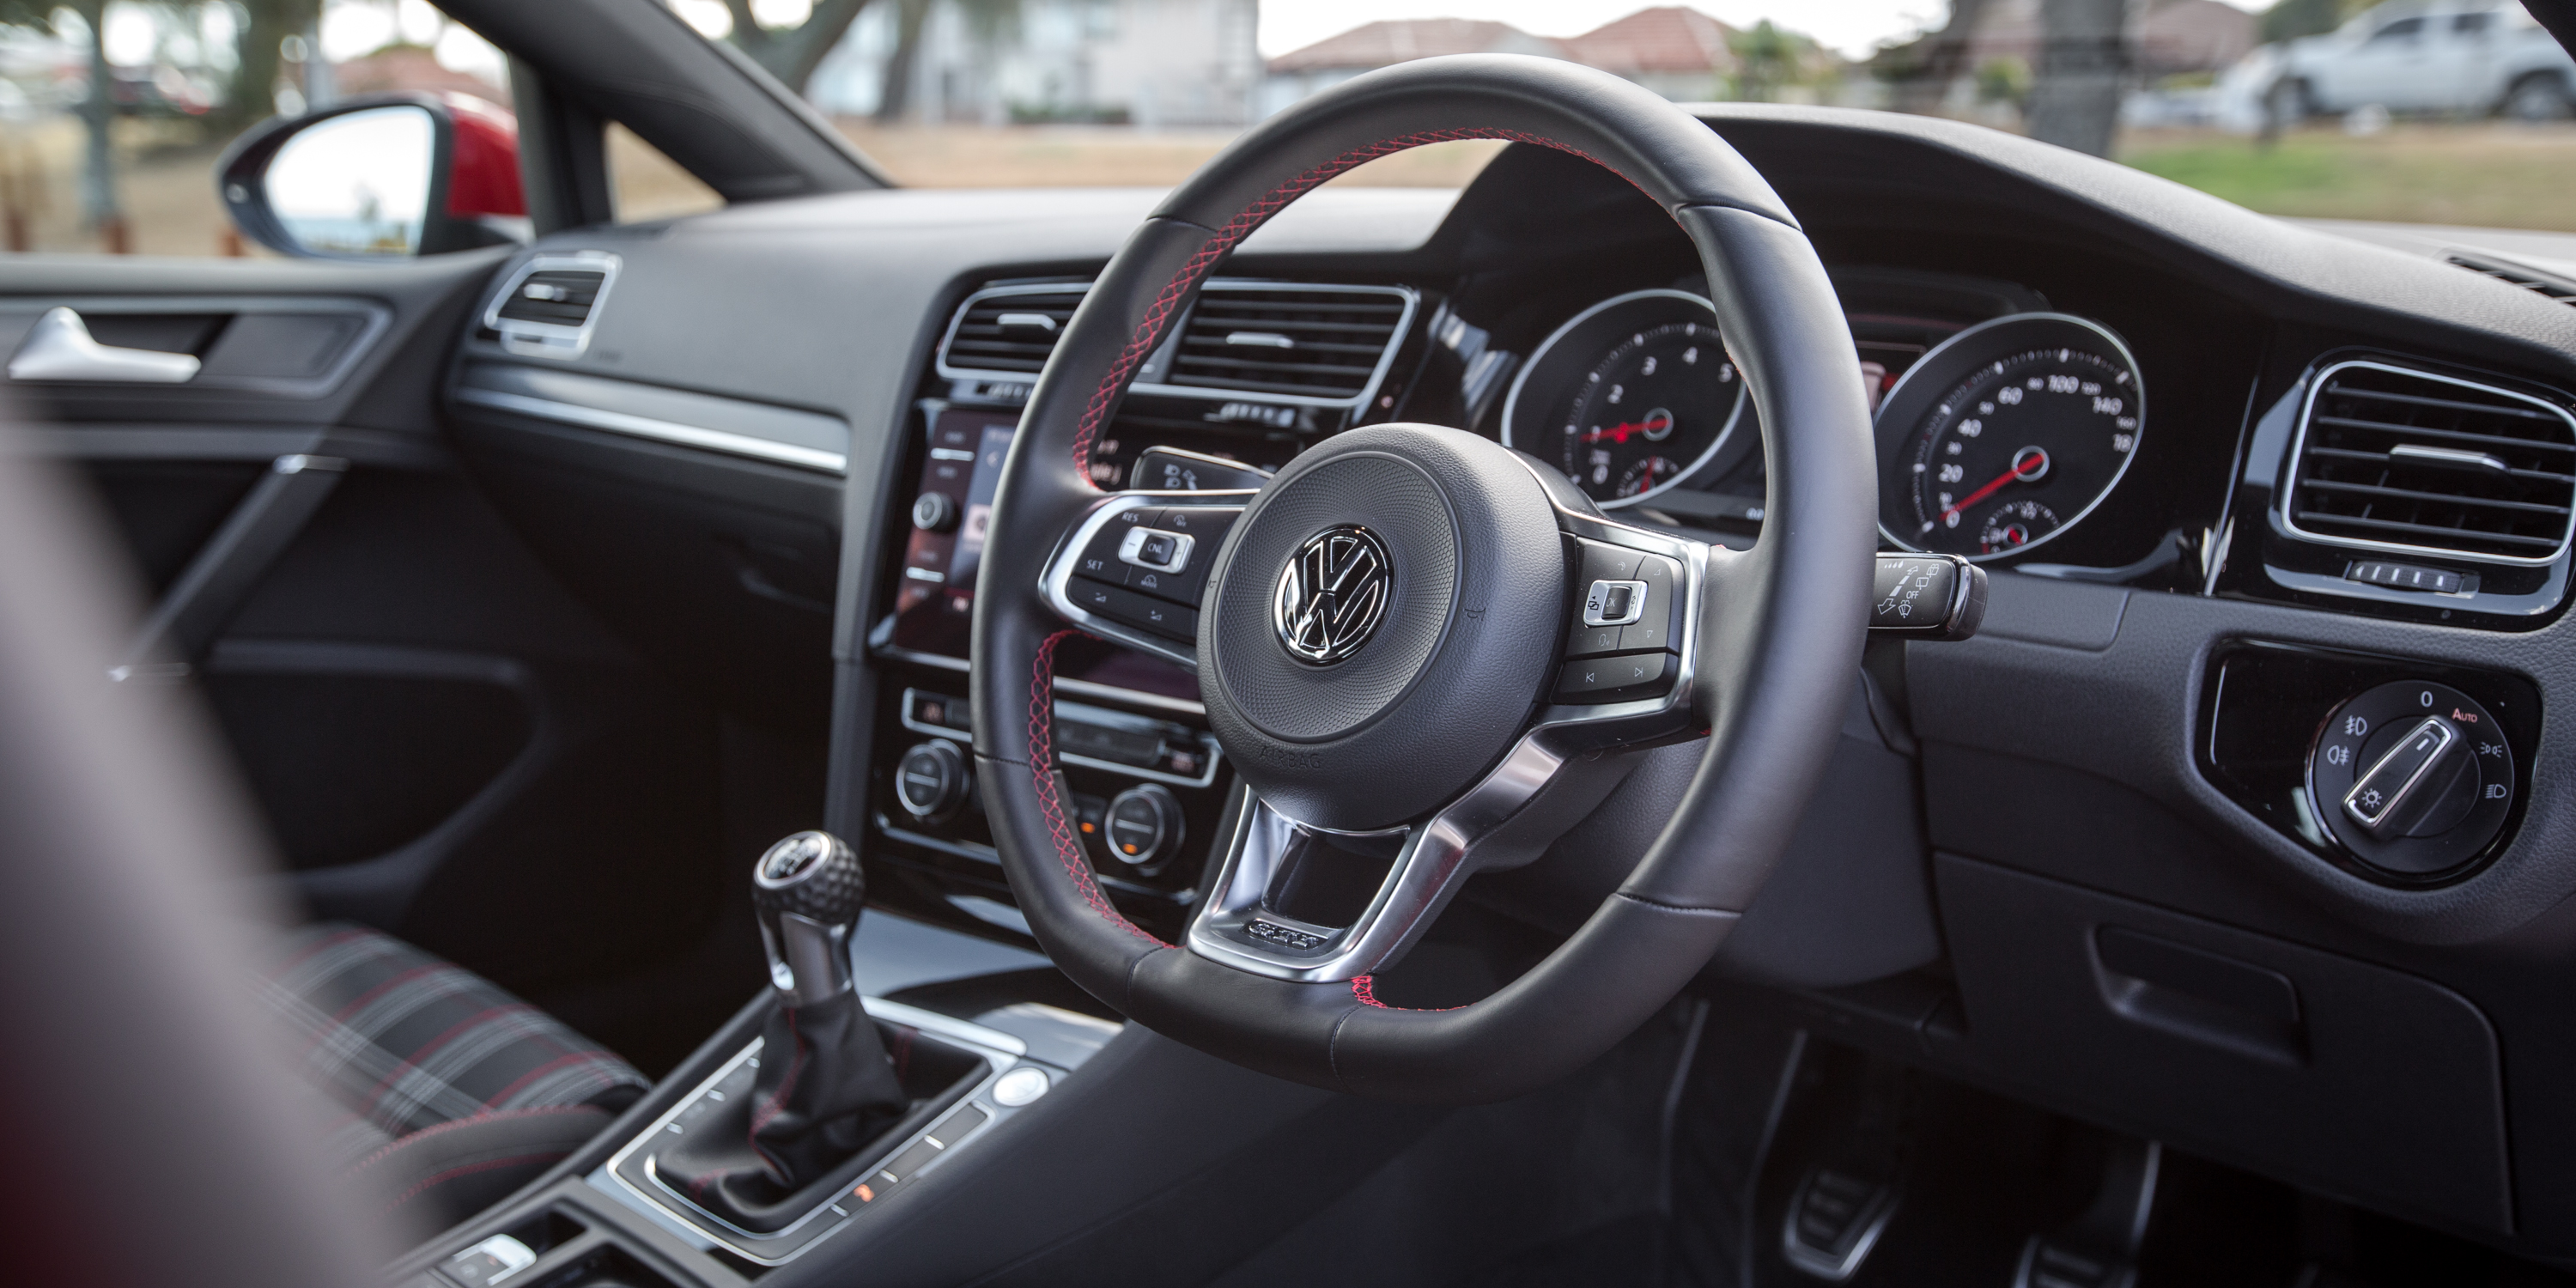 Volkswagen Golf GTI photo 183026